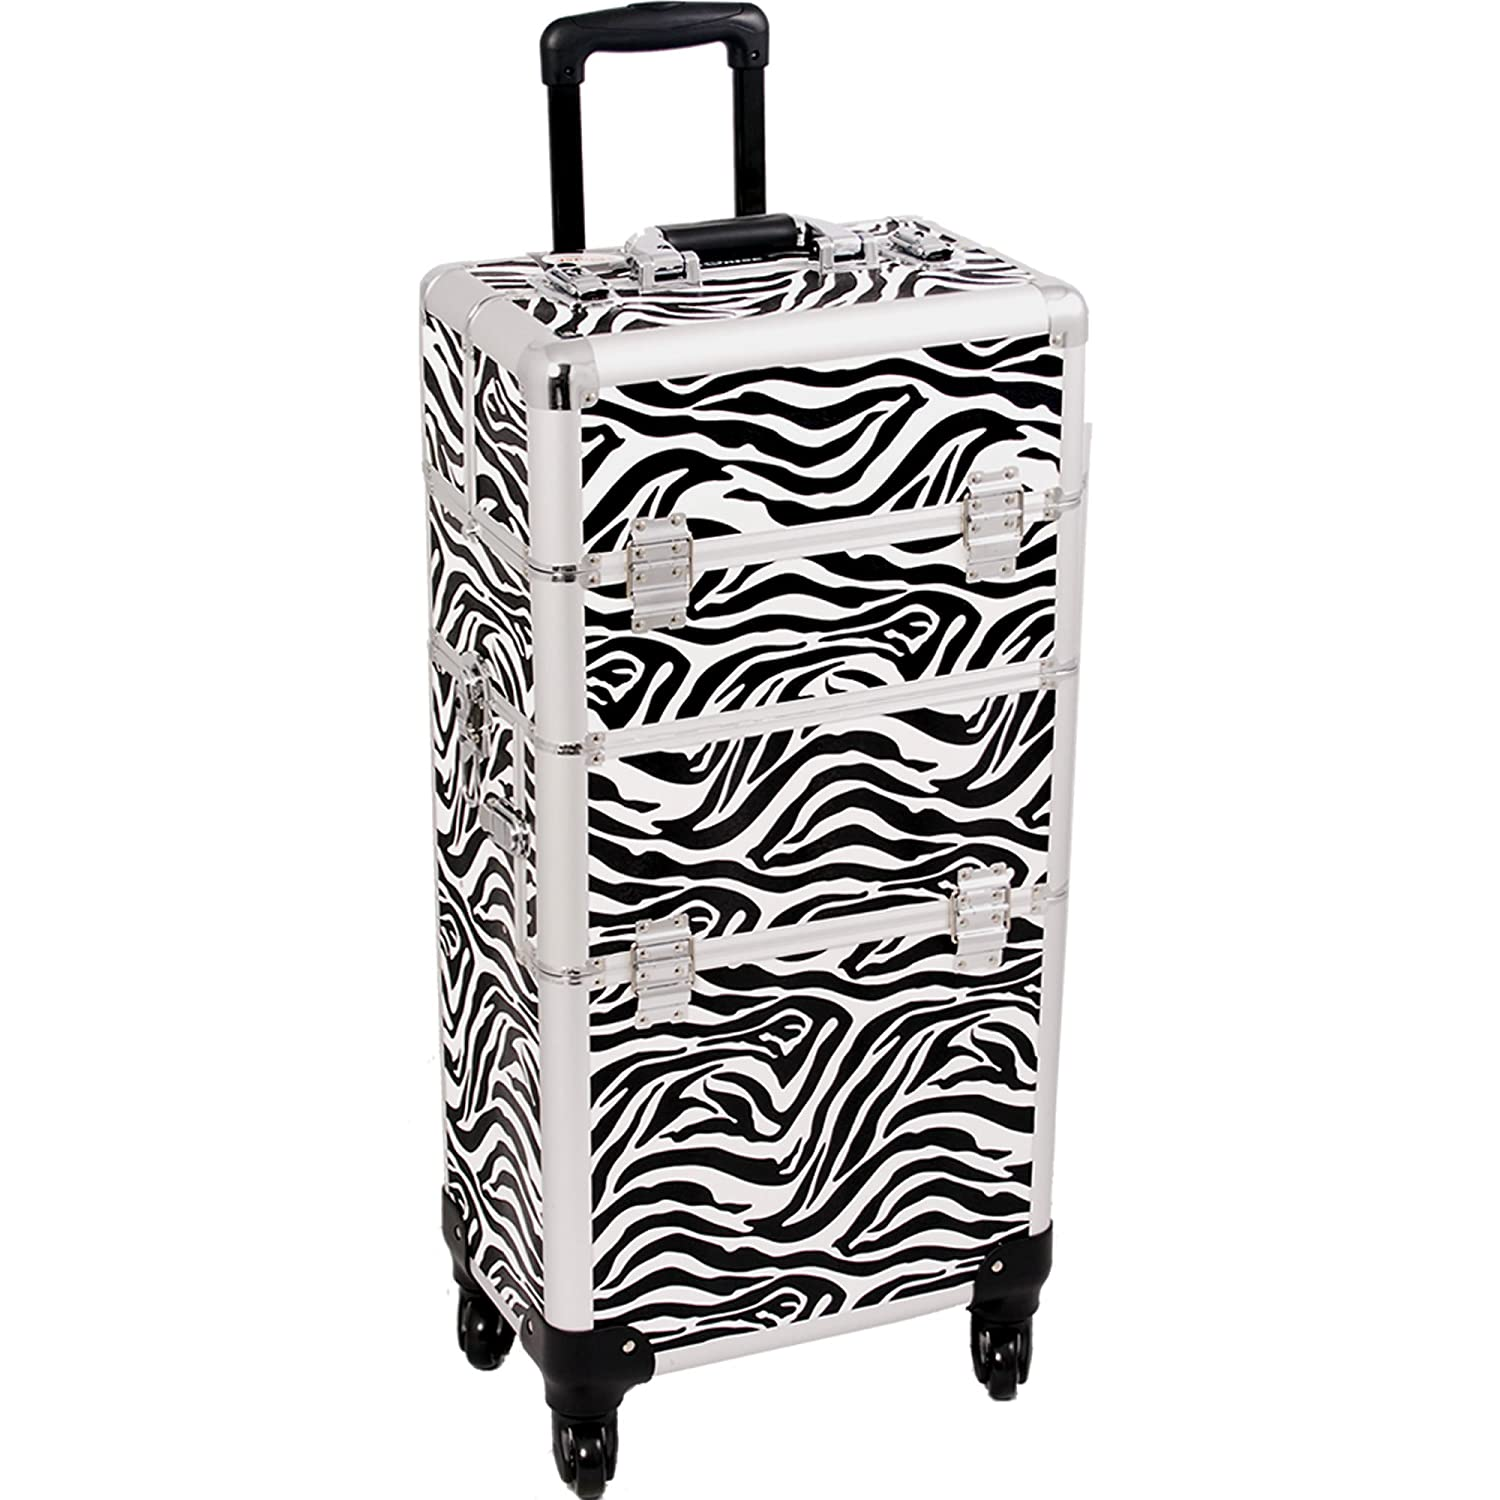 SUNRISE Makeup Case on Wheels 2 in 1 I3561 Hair Stylist Professional, 3 Trays and 1 Removable Tray, Locking with 2 Mirrors, Brush Holder and Shoulder Strap, White Zebra